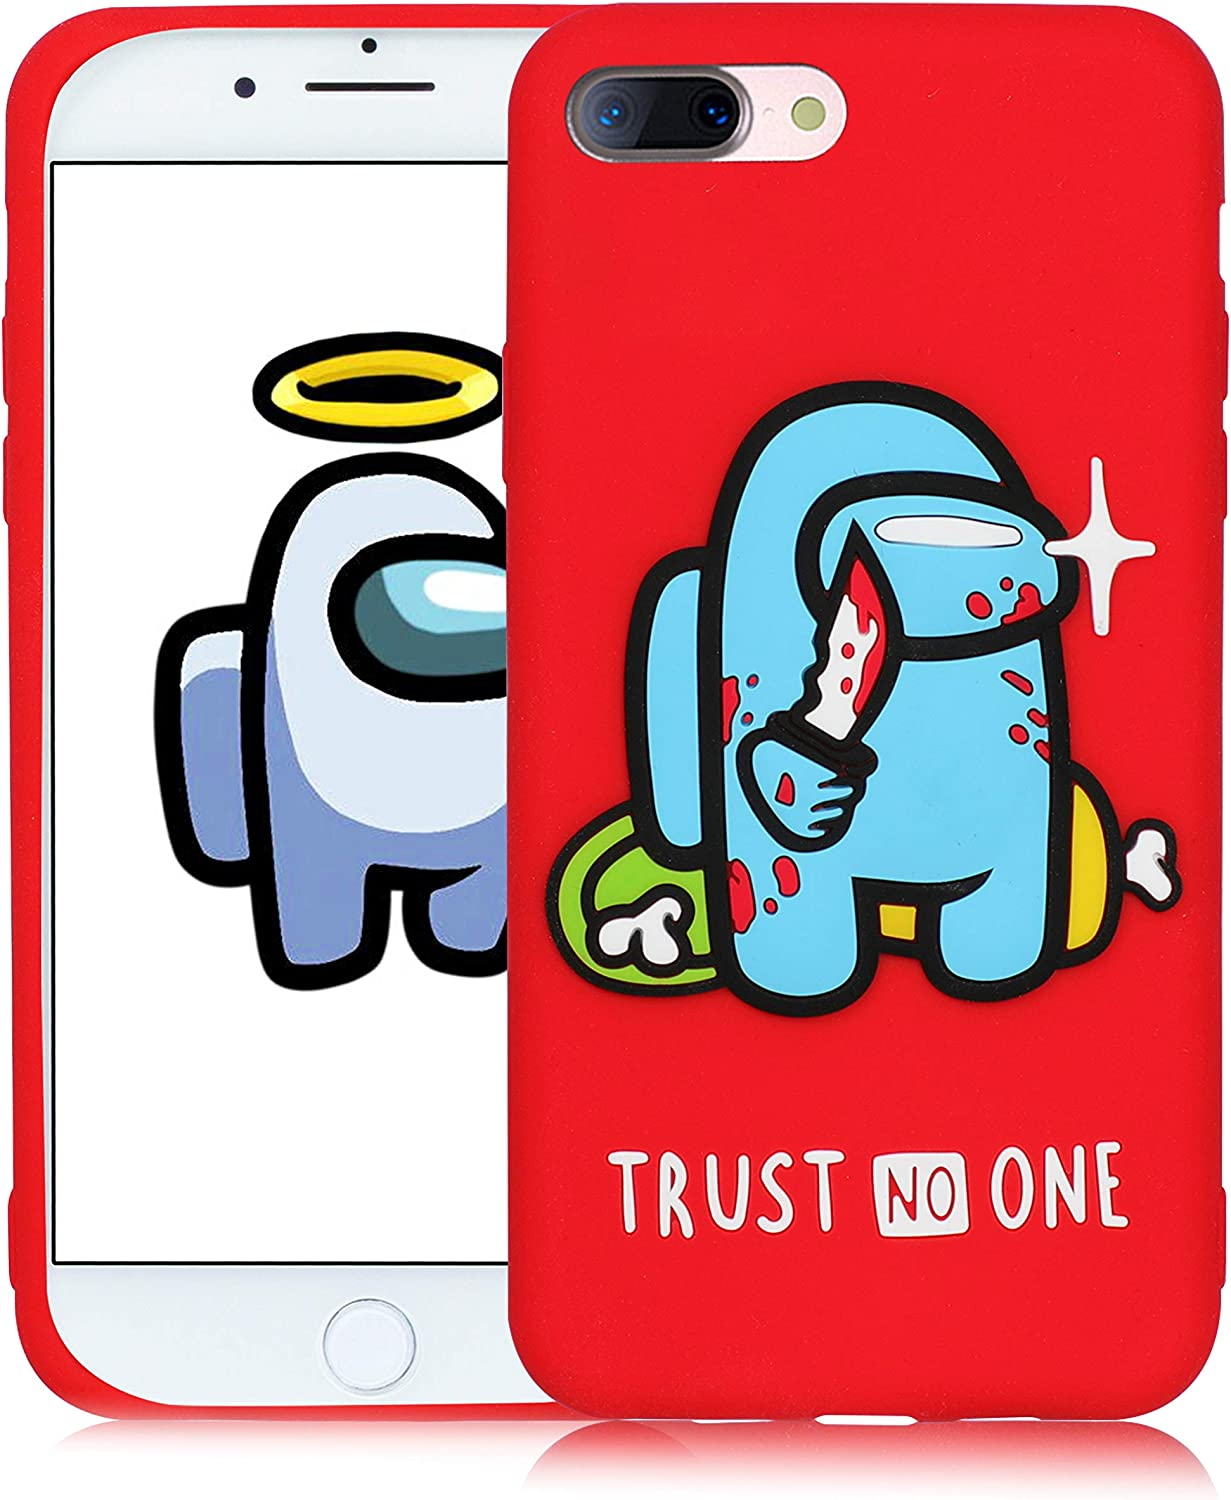 Oqplog Case for iPhone 8 Plus/7 Plus/6 Plus/6S Plus Cartoon Cute 3D Kawaii Fun Red Star Kids Design Silicone Cover,Cool Funny Fashion Cases for iPhone 8 Plus 5.5